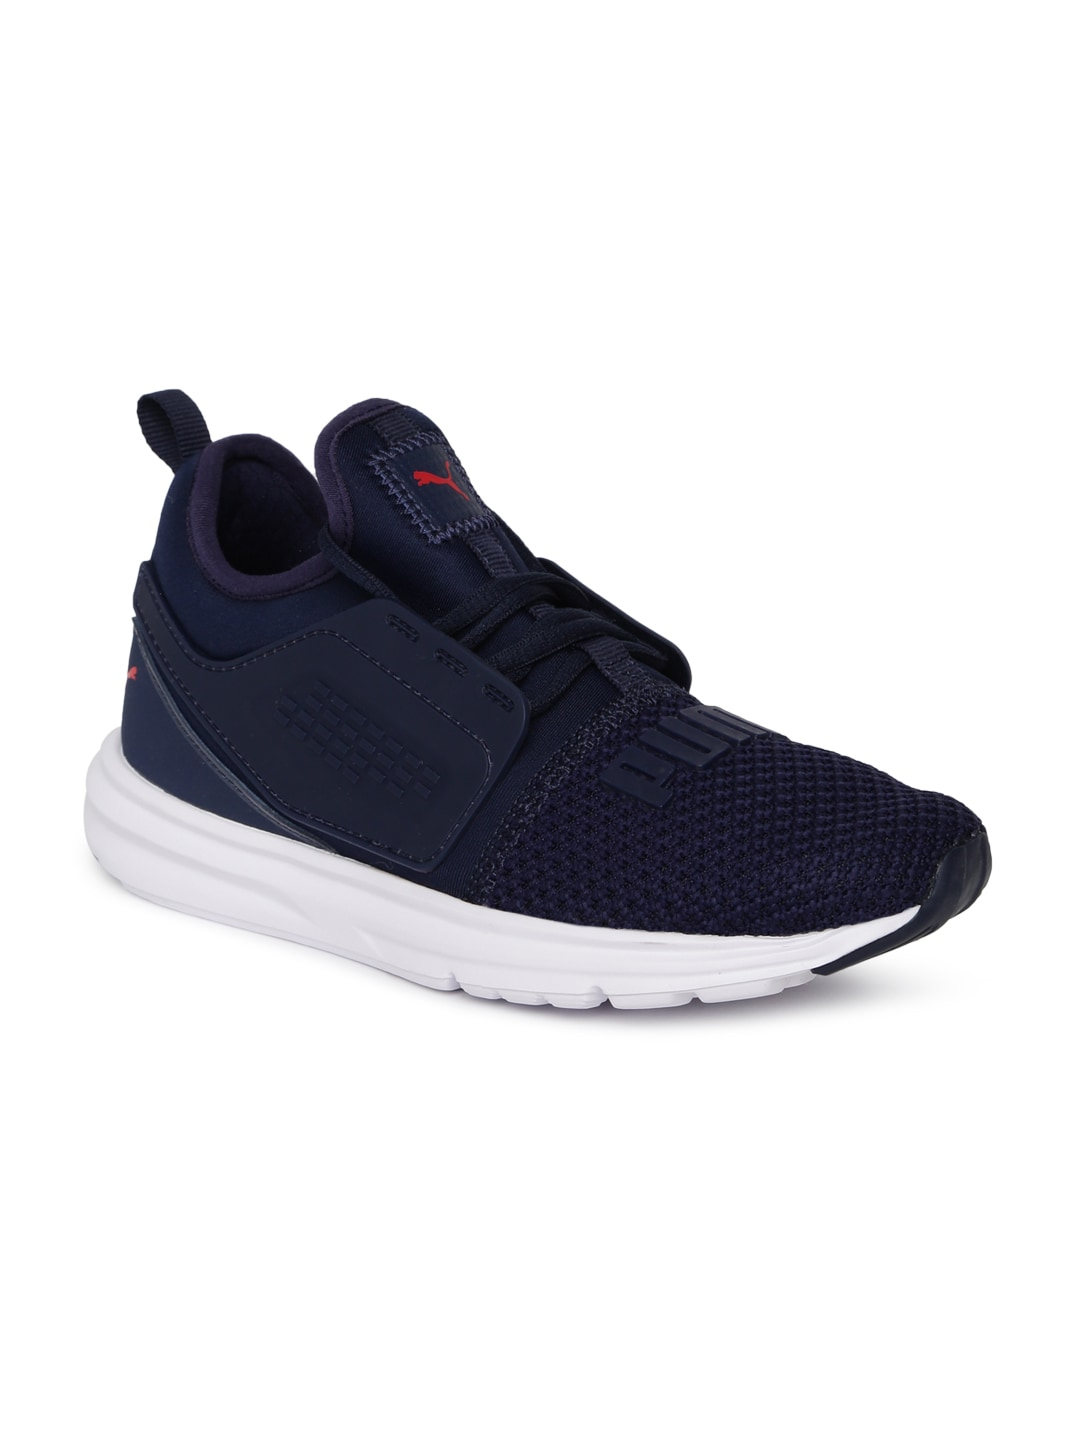 Puma Boys Shoes Polo Denim - Buy Puma Boys Shoes Polo Denim online in India b9ccf6970